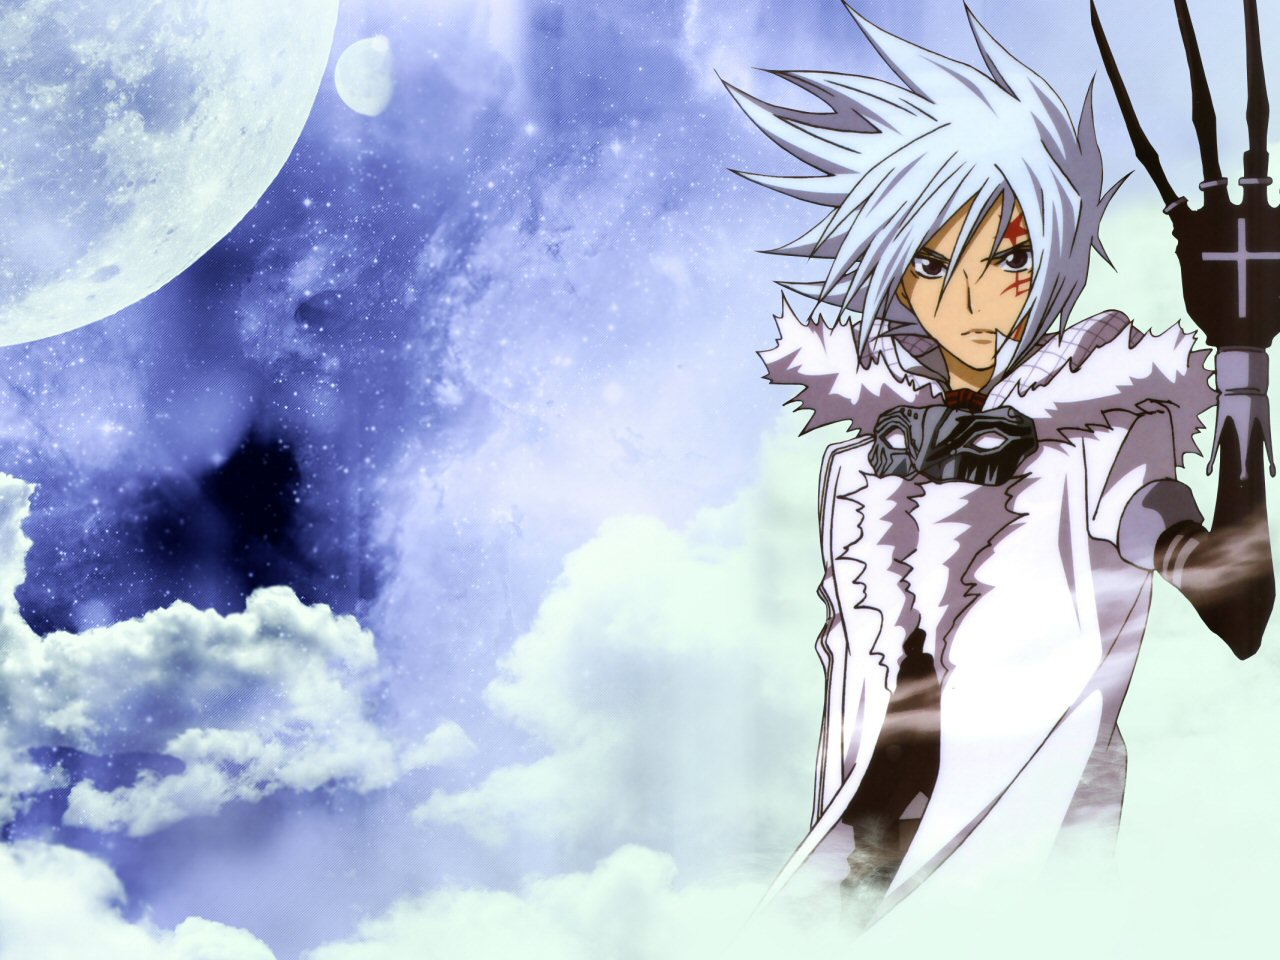 Info Wallpapers anime guy wallpapers 1280x960